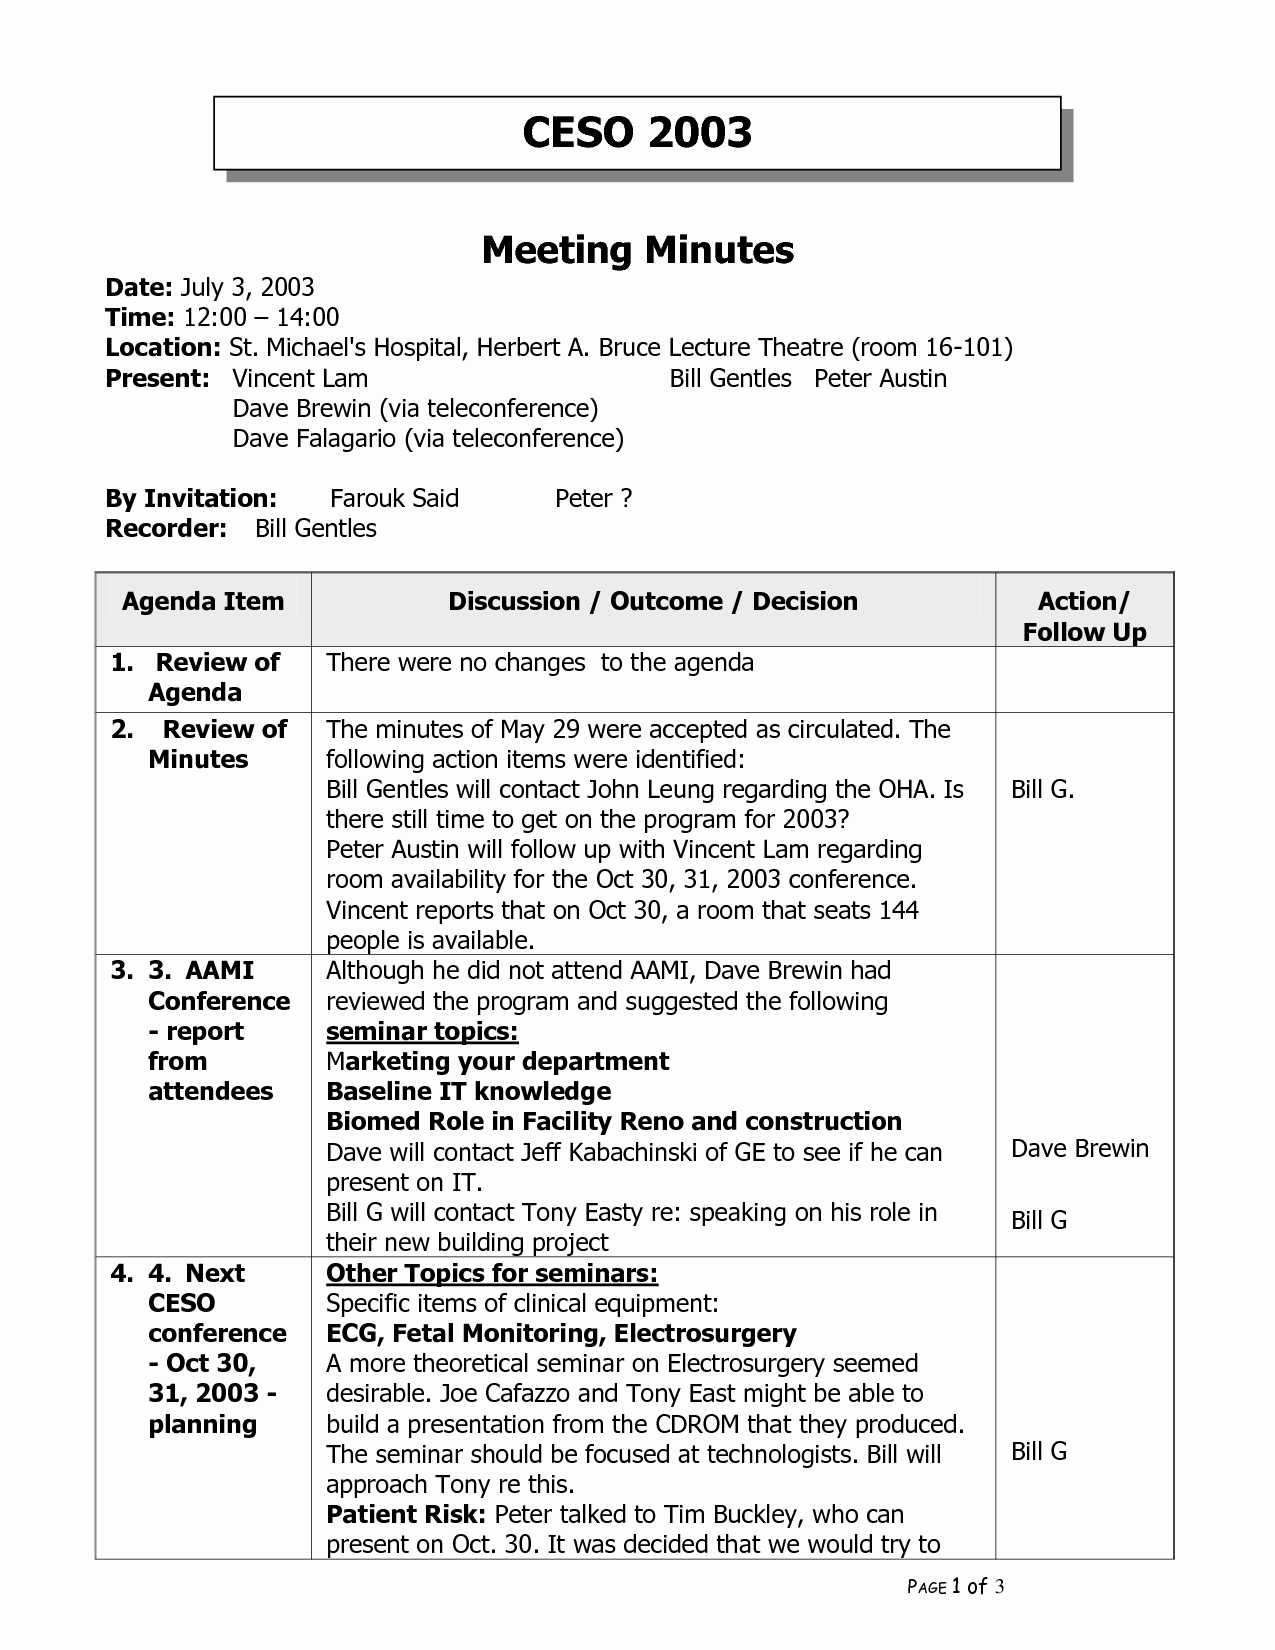 Meeting Minutes Template Microsoft Word Lovely Microsoft Word Meeting Minutes Template